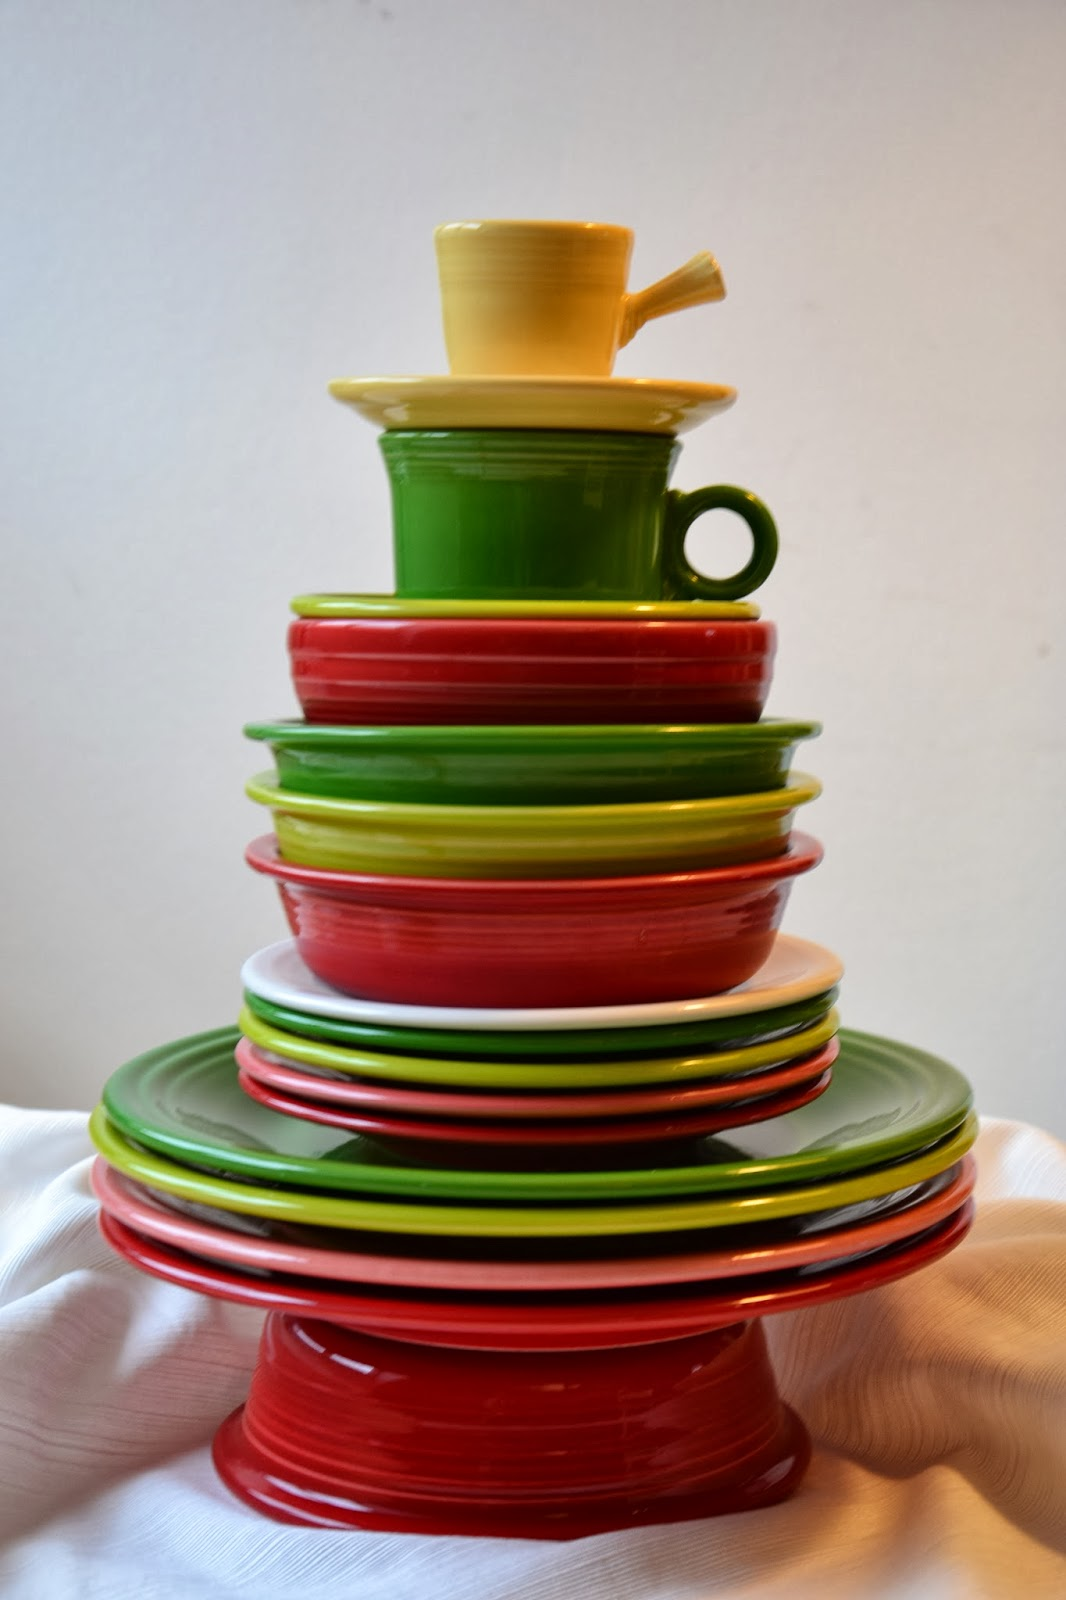 Fiestaware Christmas Plates & Collection Fiestaware Christmas Plates Pictures - Christmas Tree ...